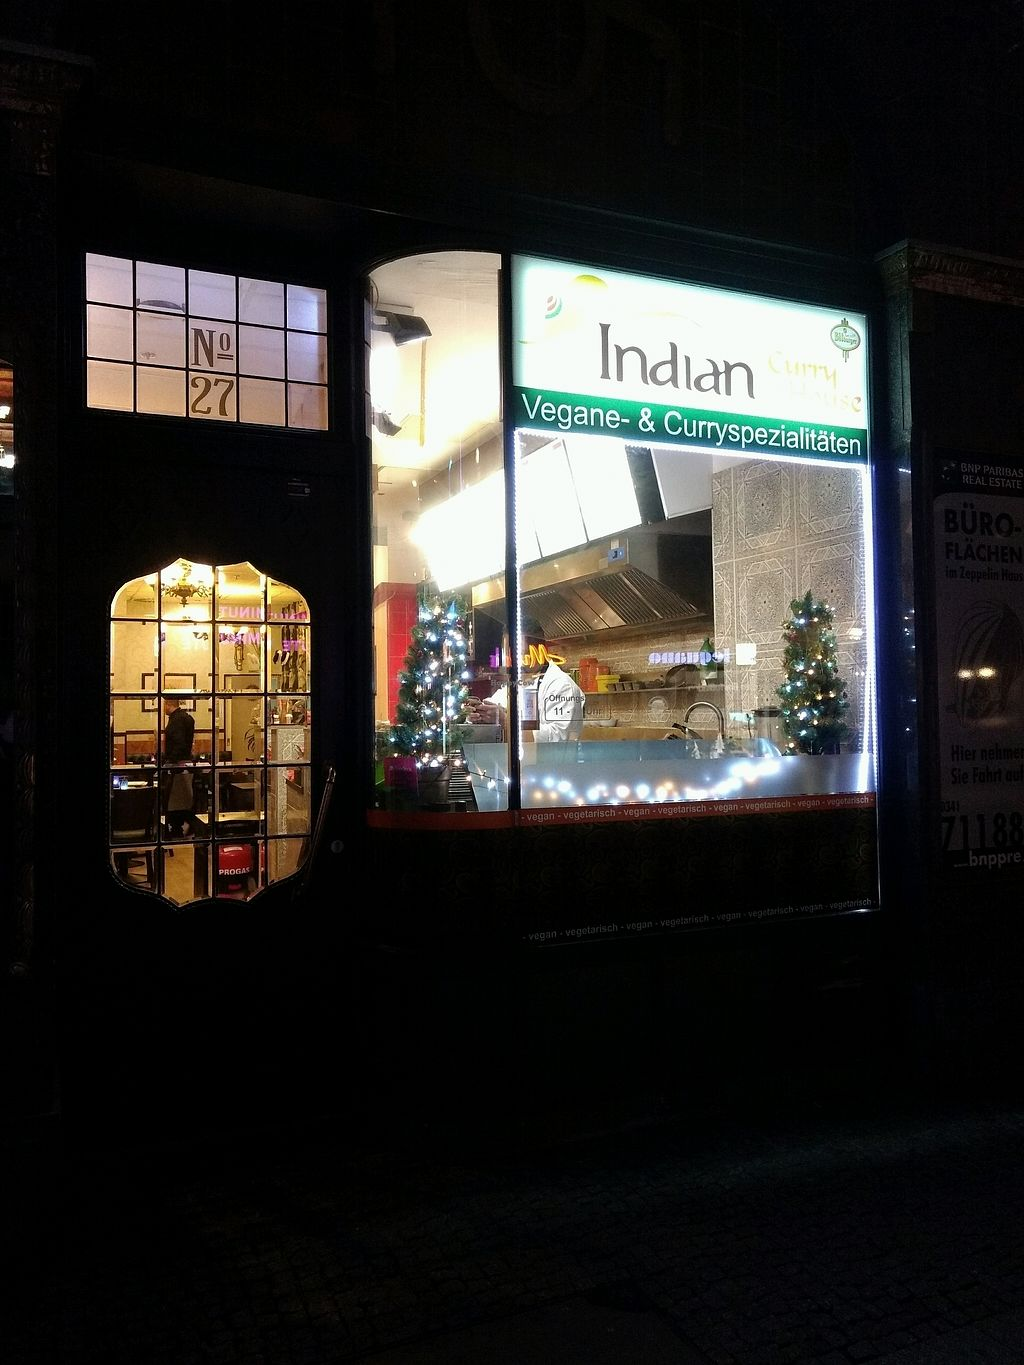 """Photo of Indian Curry House  by <a href=""""/members/profile/erinlovestofu"""">erinlovestofu</a> <br/>Front view <br/> December 26, 2017  - <a href='/contact/abuse/image/101894/339280'>Report</a>"""